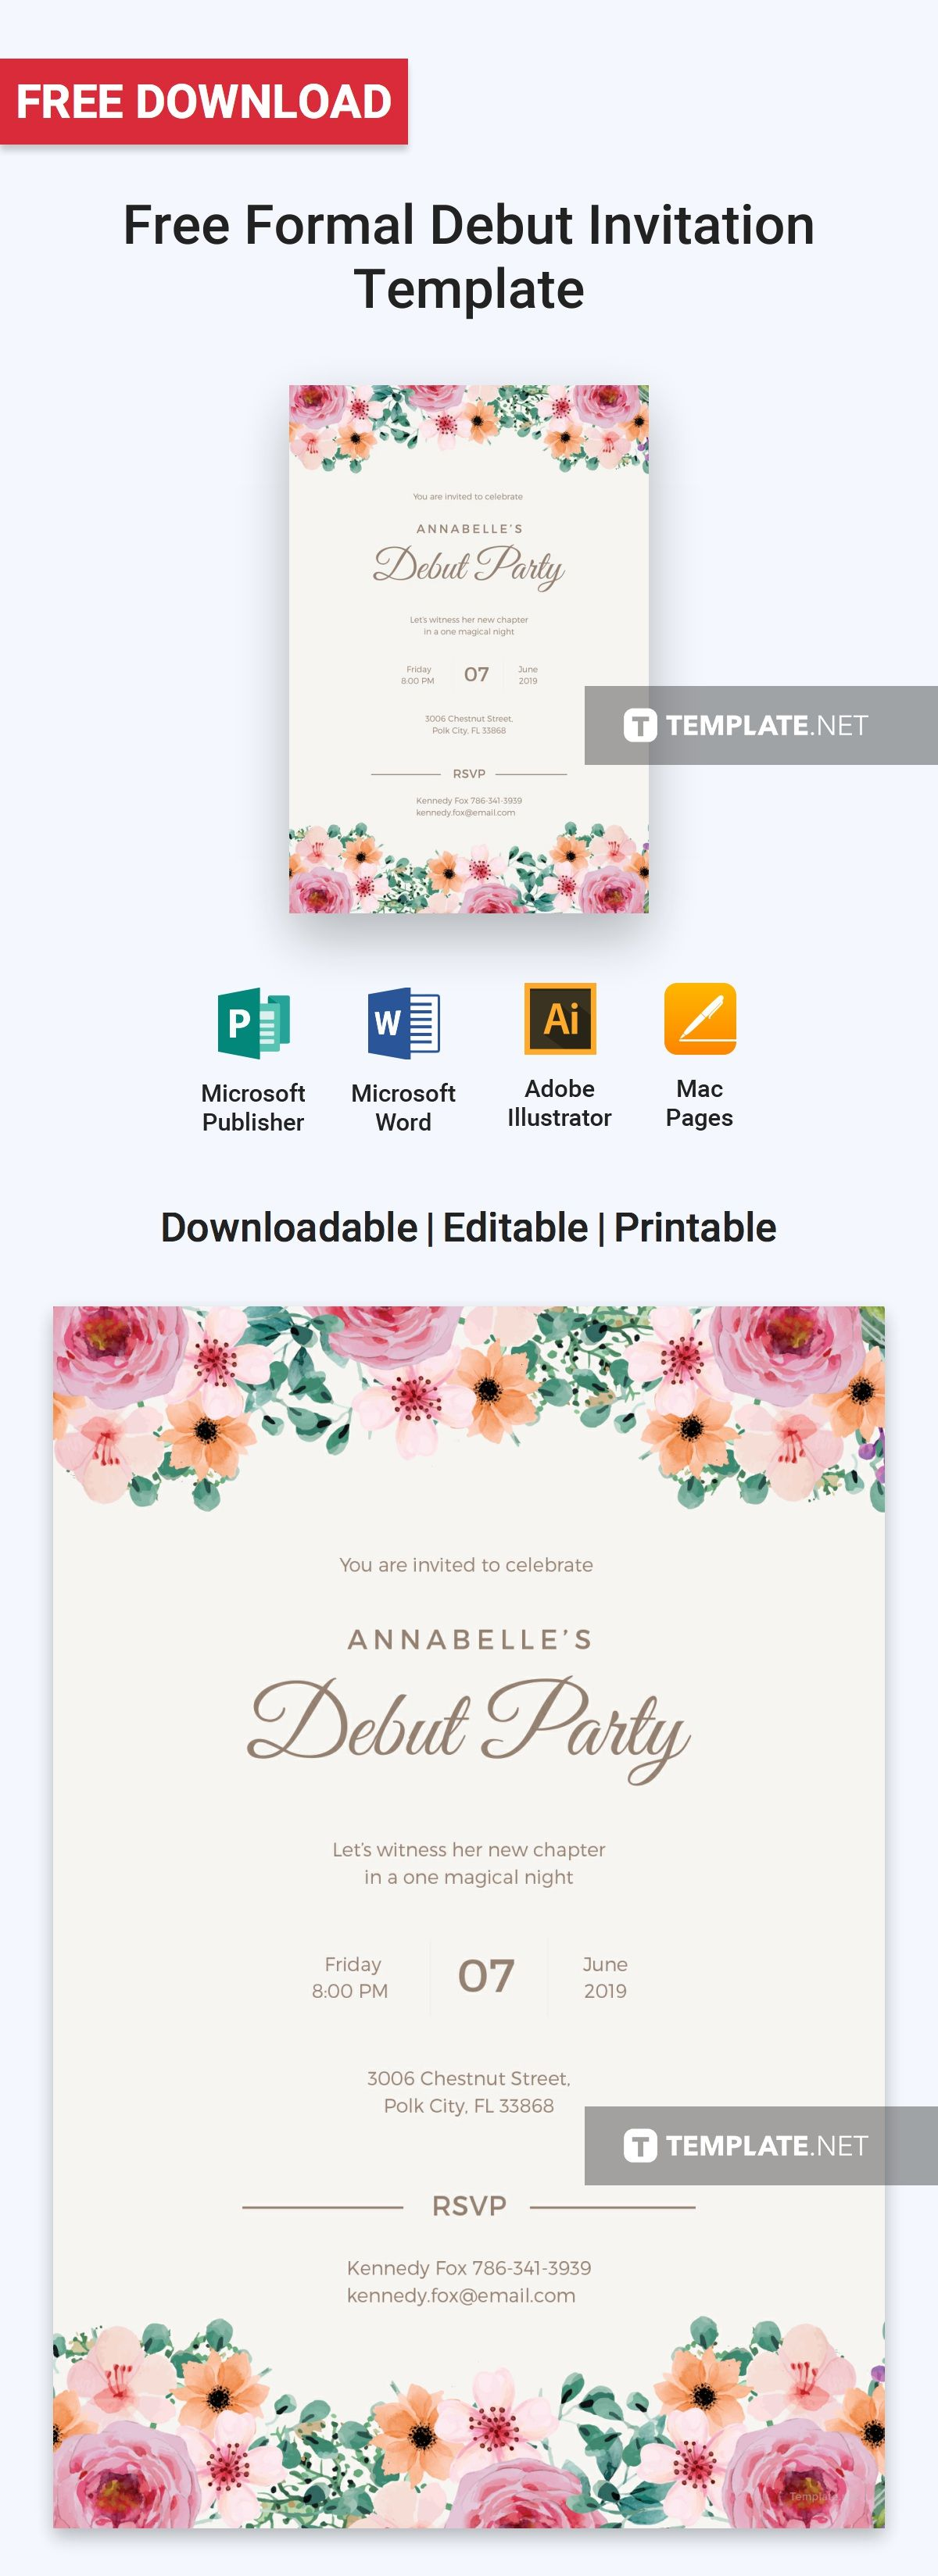 Free Formal Debut Invitation Template Illustrator Word Outlook Apple Pages Psd Publisher Template Net Debut Invitation Invitation Template Debut Invitation 18th